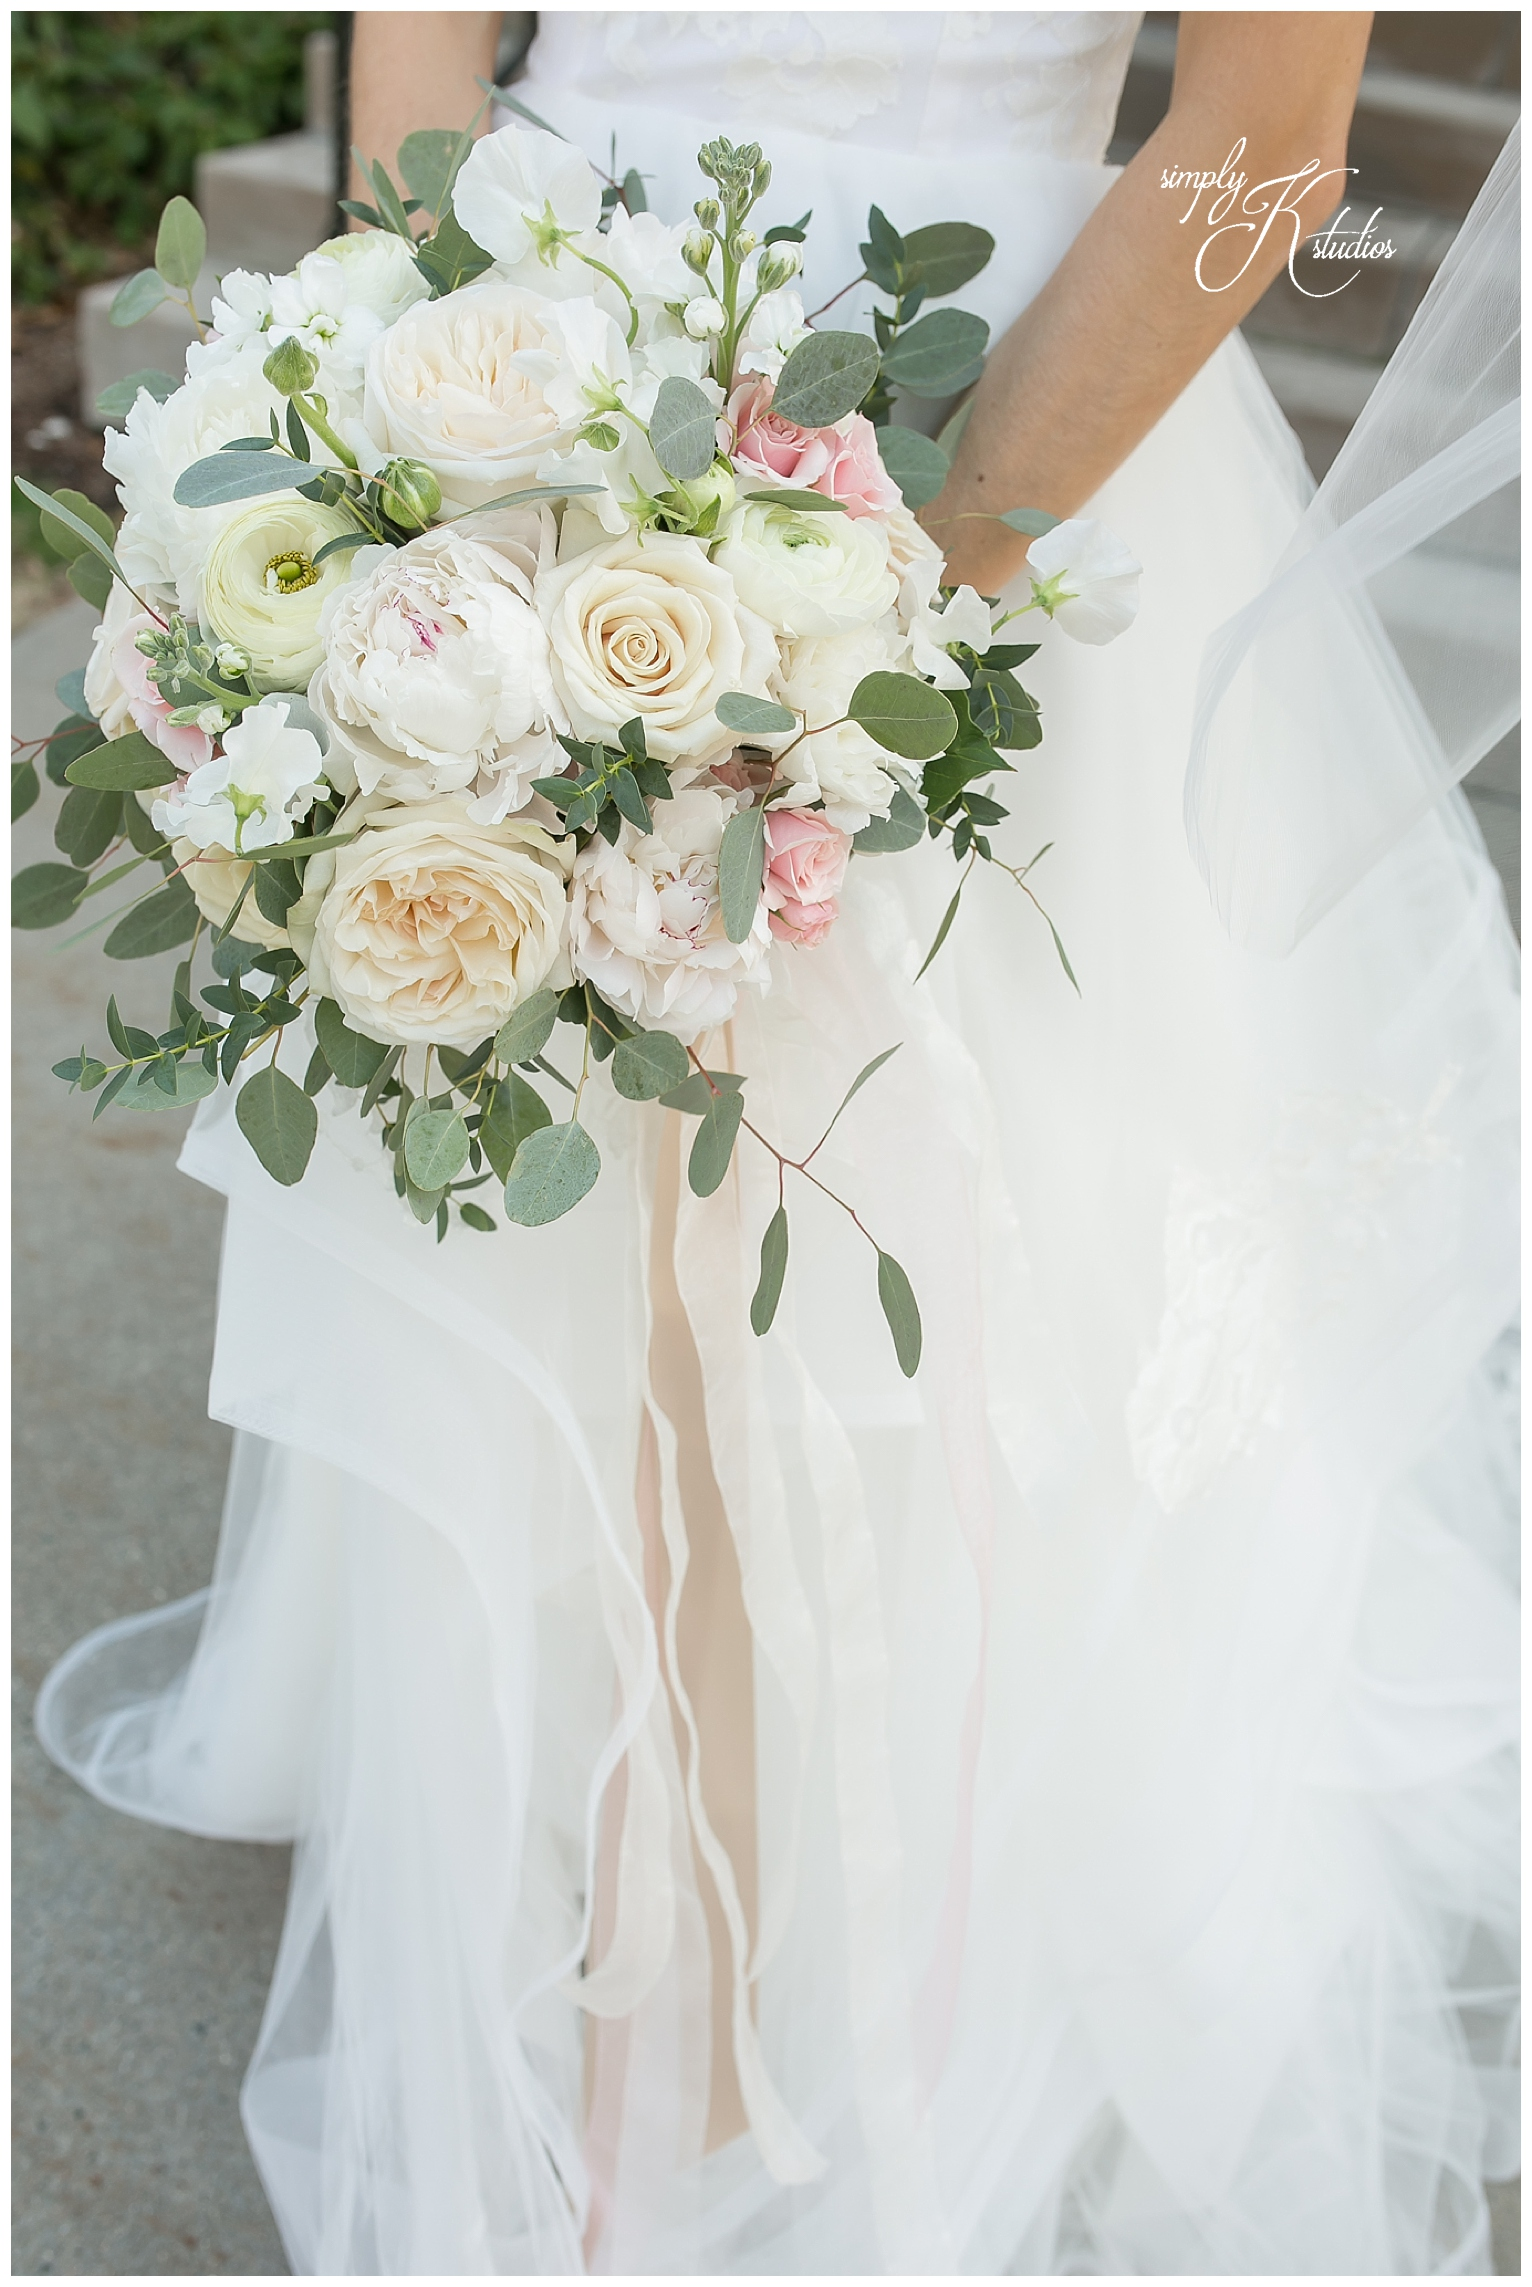 Wedding Bouquet from Sharon Elizabeths.jpg